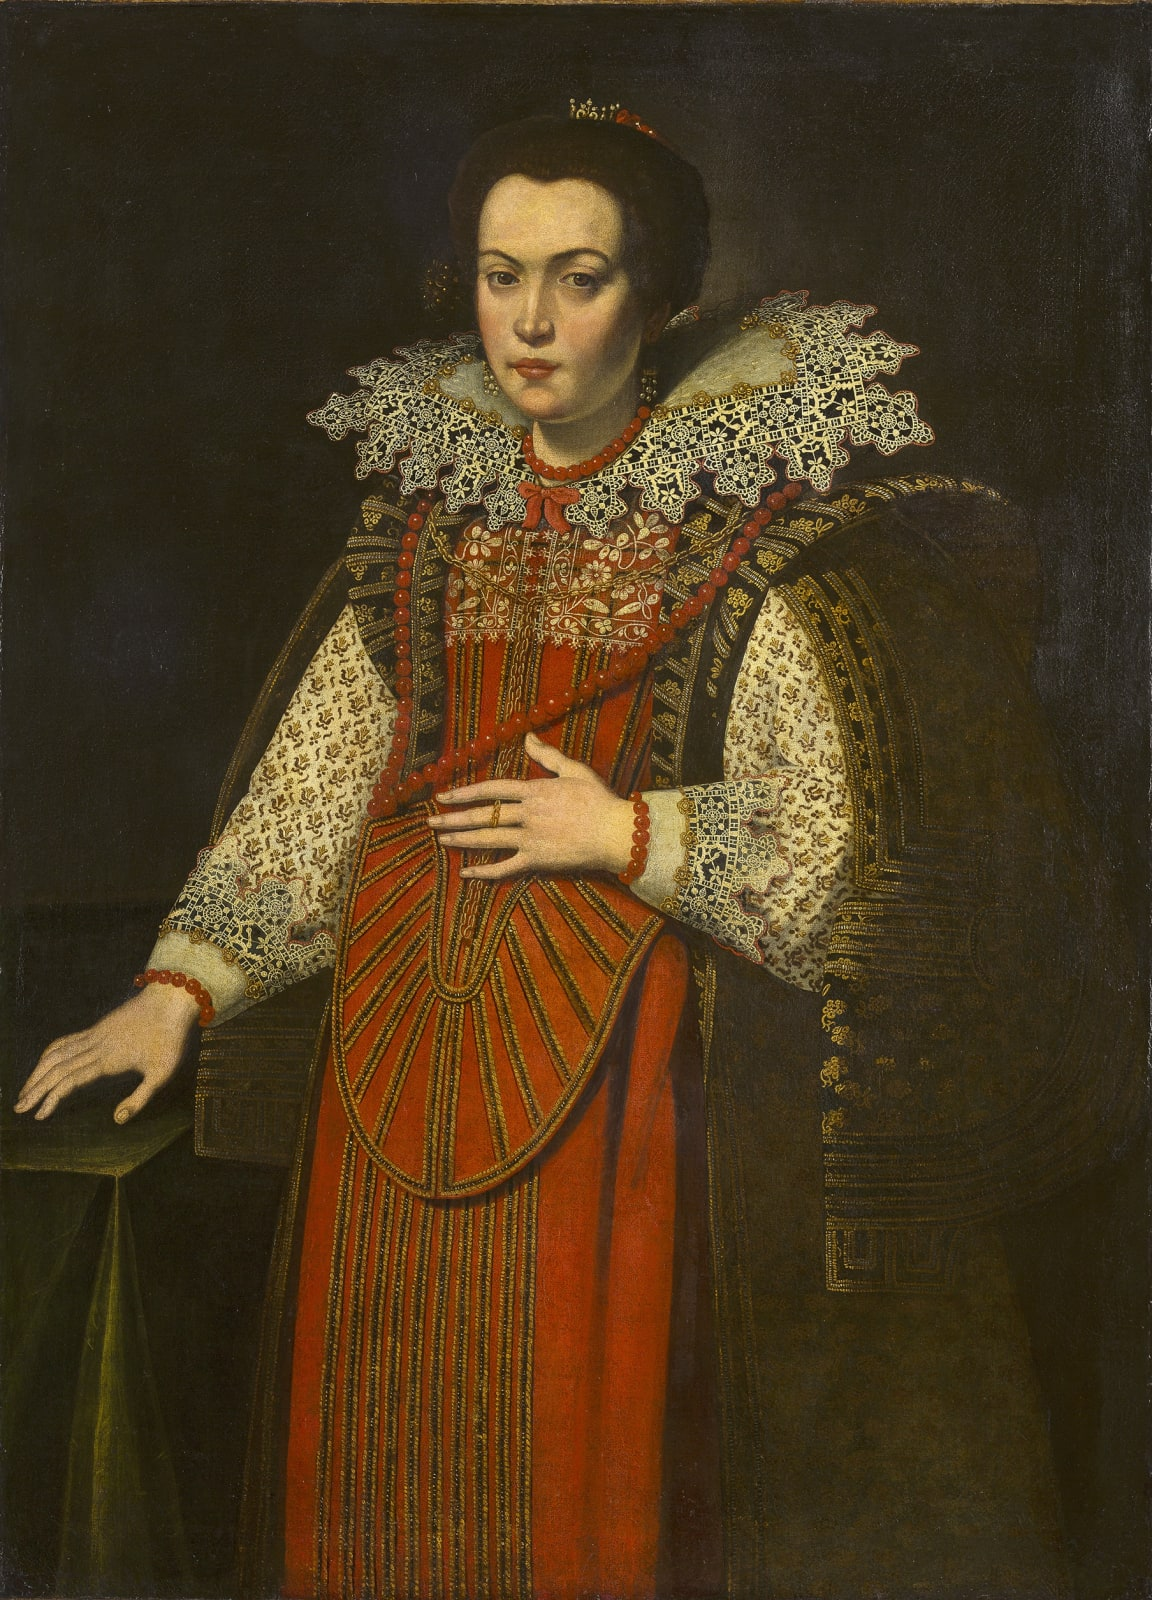 Justus Sustermans Portrait of a Lady in a Red Dress, ca. 1640